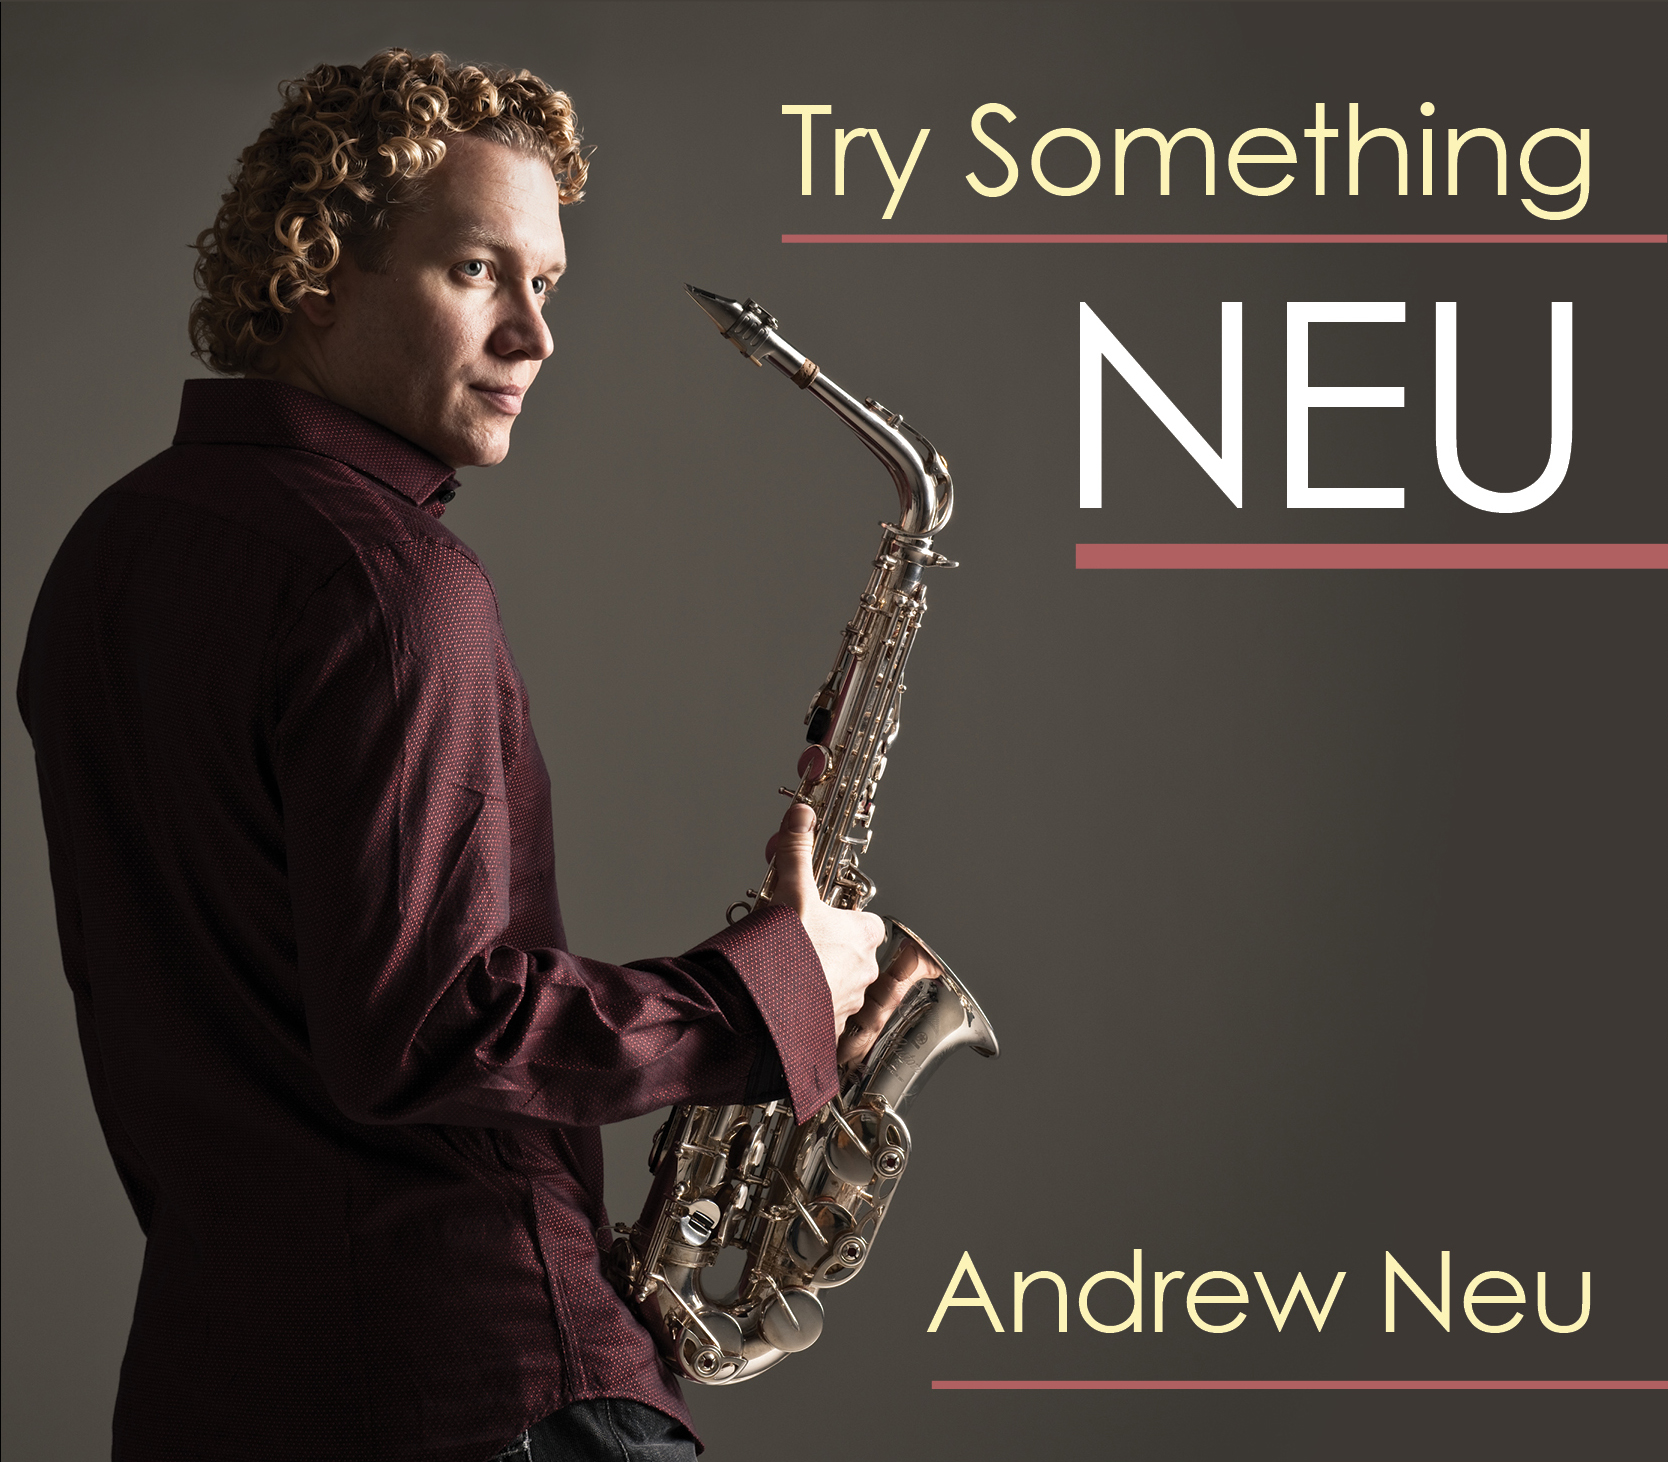 Andrew's sax playing on his third CD,  TRY SOMETHING NEU , is stronger than ever and shows off his real jazz chops. For this release, he brings together the dream team of producers, Brian Bromberg, Chuck Loeb and Gerald Veasley. Each presents their own style of music; you hear a little LA, NYC and Philly vibe. With the ever present Bright and Tight Horns as well as the brilliant vocals of Bobby Caldwell, Andrew's debut on NuGroove Records immediately hit the top 20 on the smooth jazz charts.